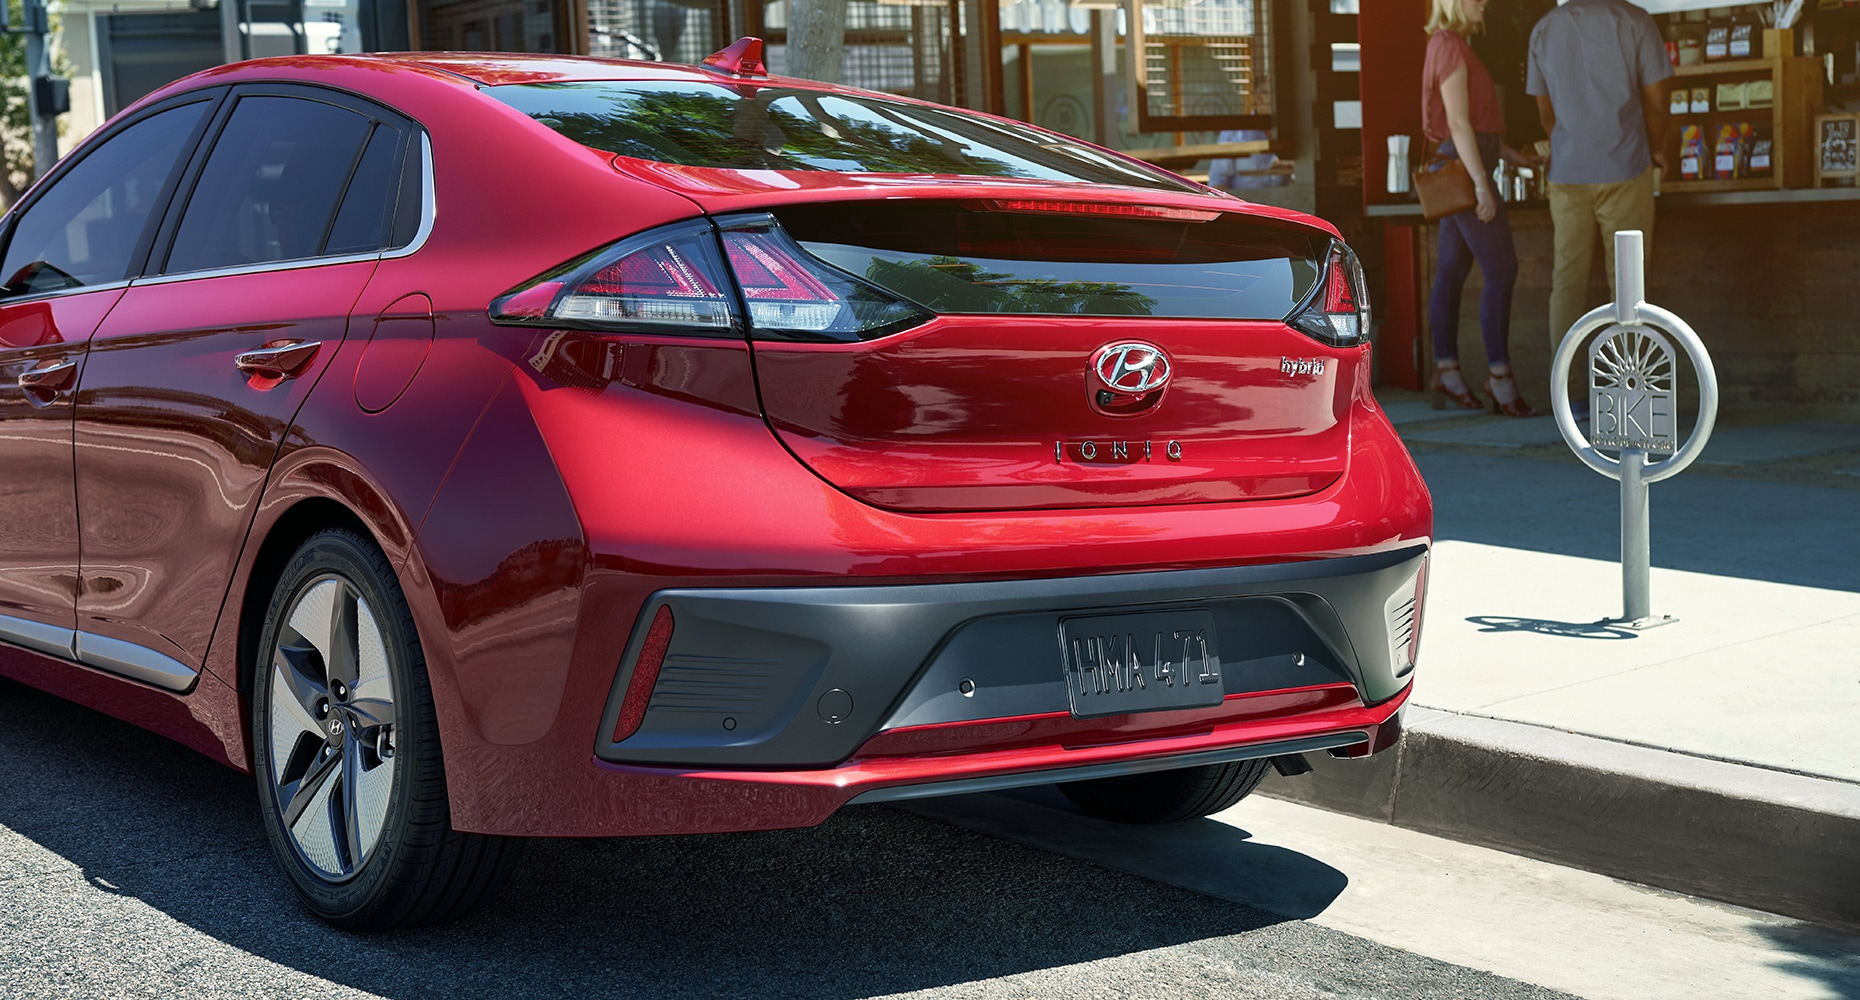 Rear view of the 2020 IONIQ Hybrid in red